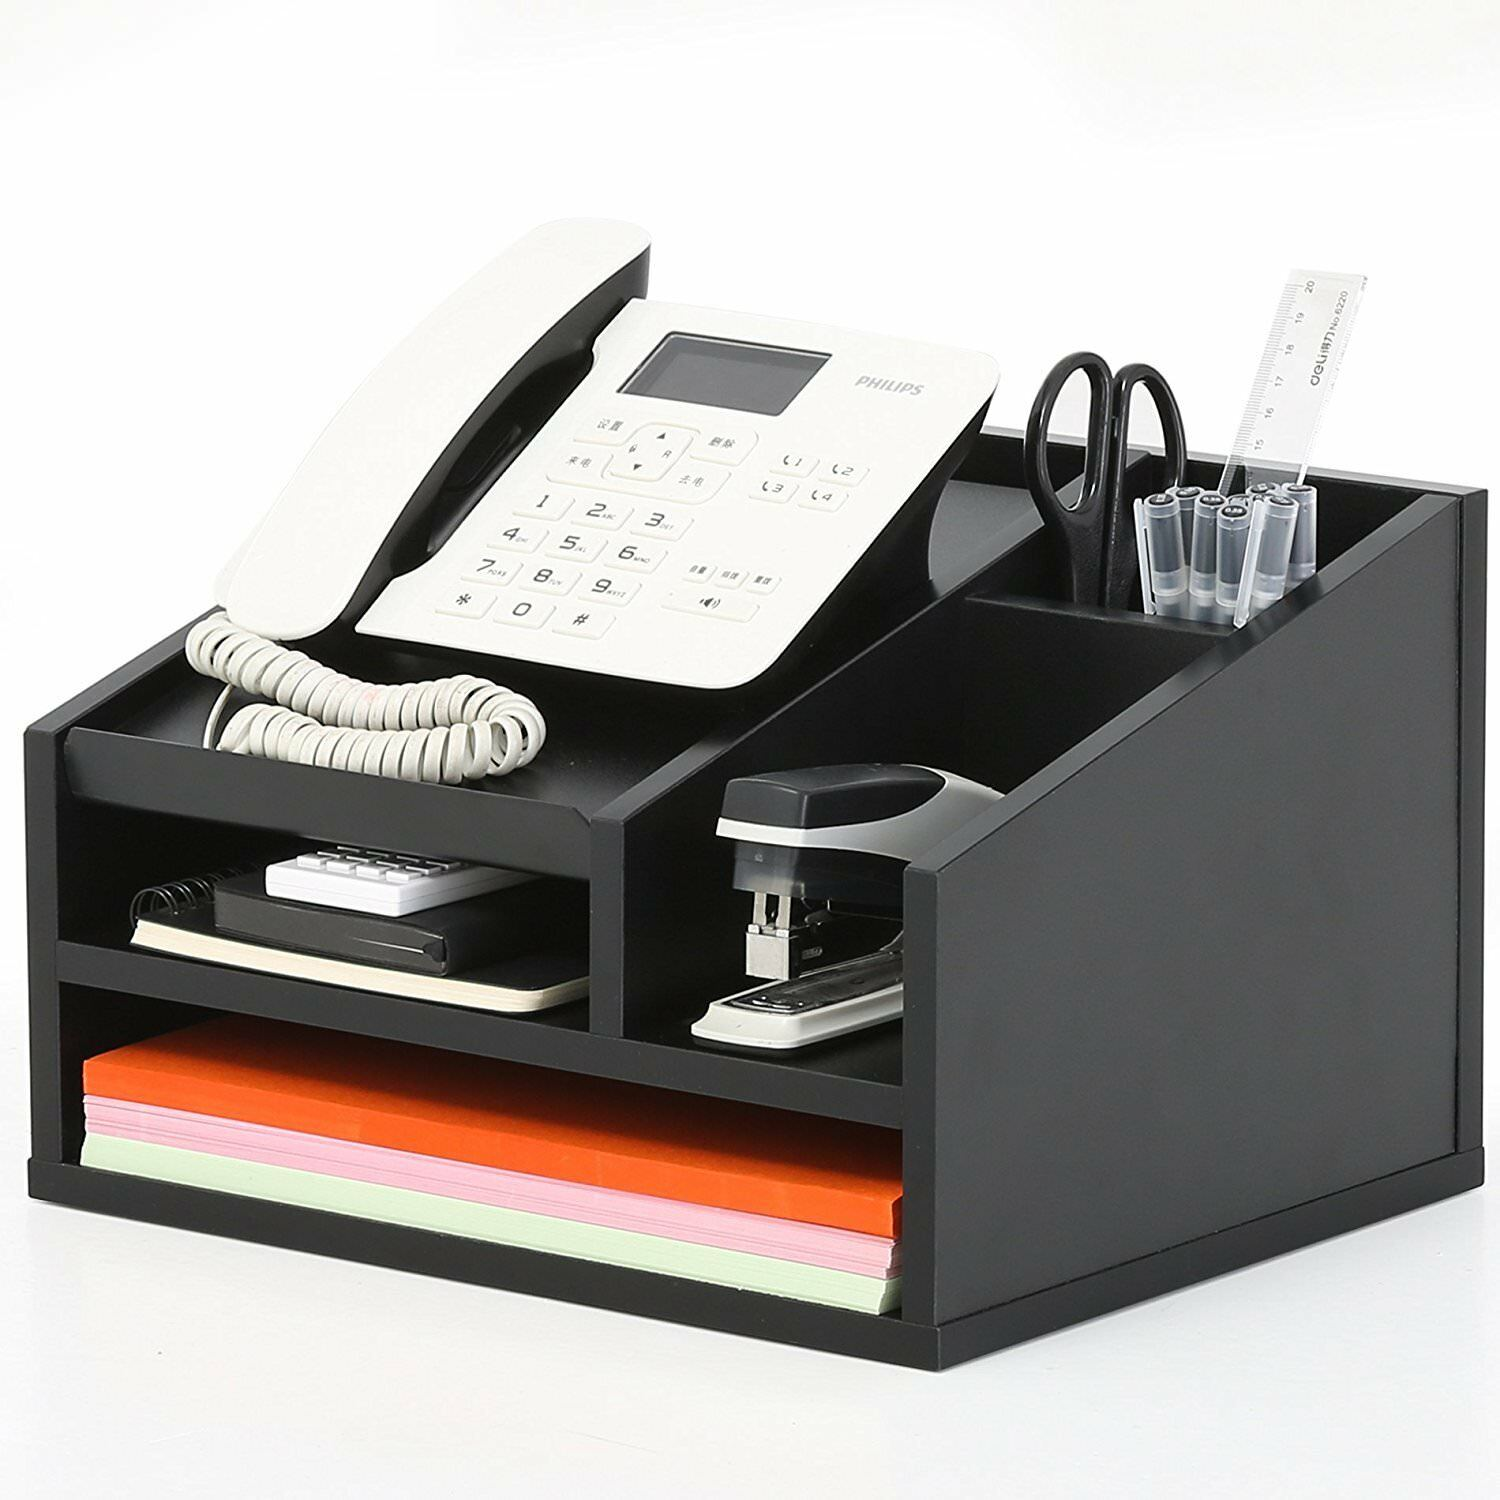 Desktop Phone Stand Desk Organizer File Supplies Black 1 Of 7only 5 Available